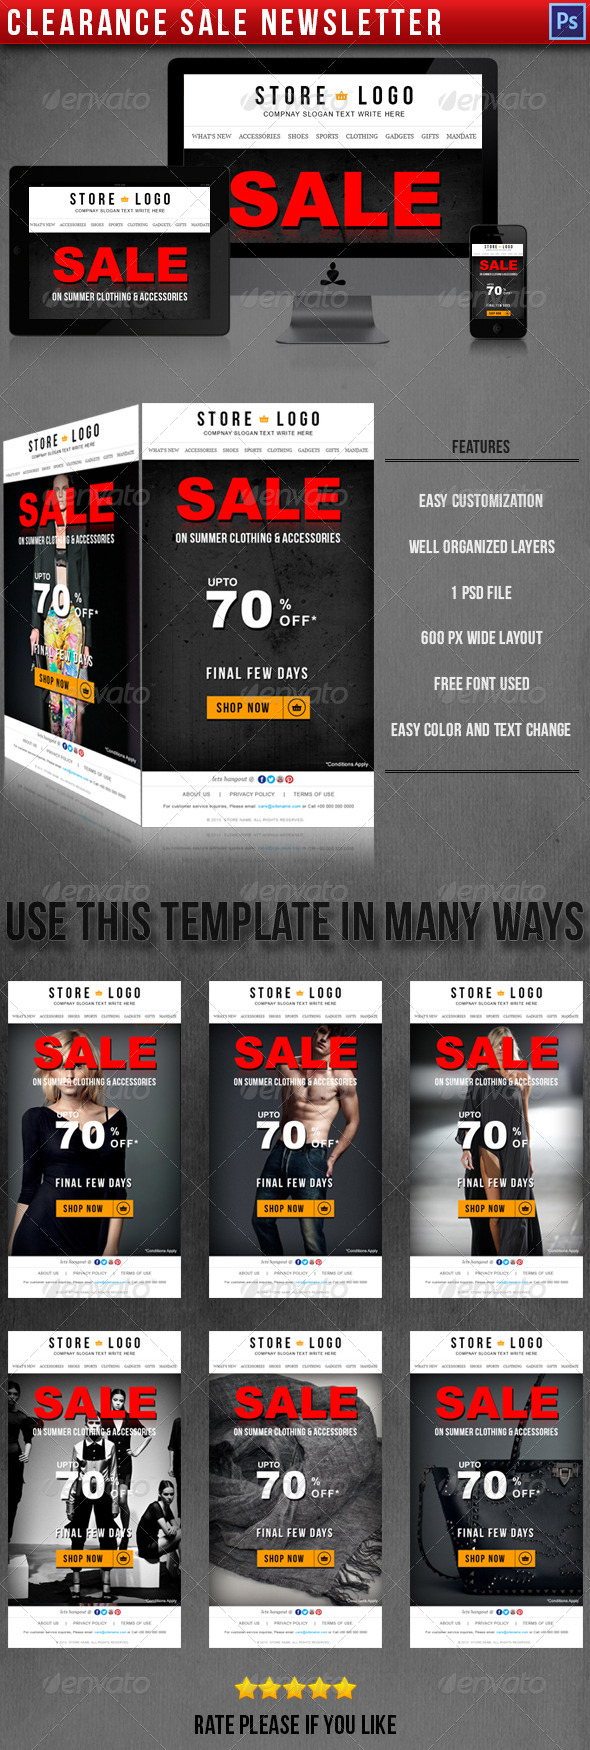 GraphicRiver Clearance Sale Newsletter E-commerce Template 4567705